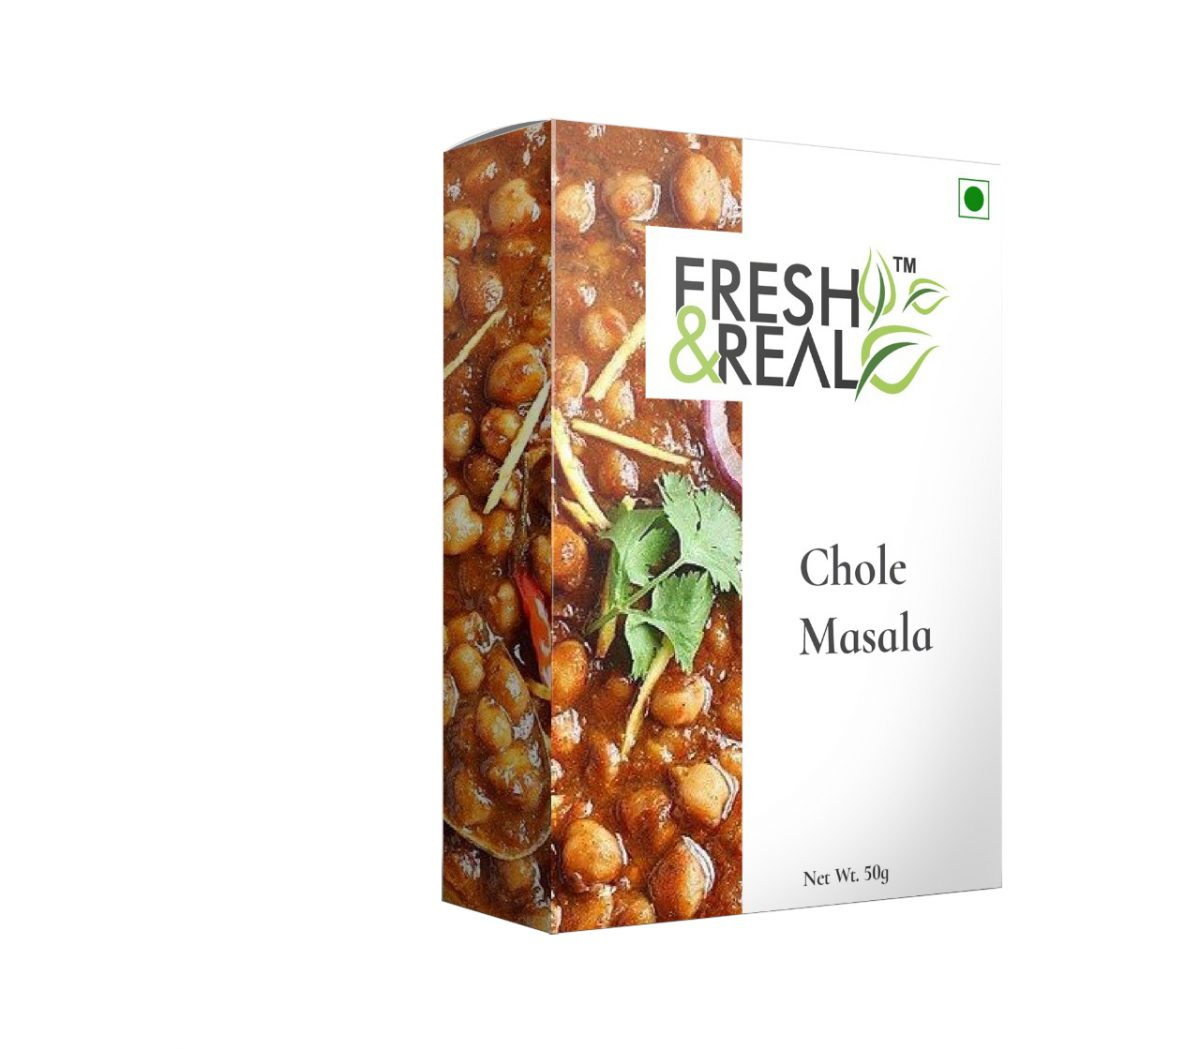 chole masala powder pack